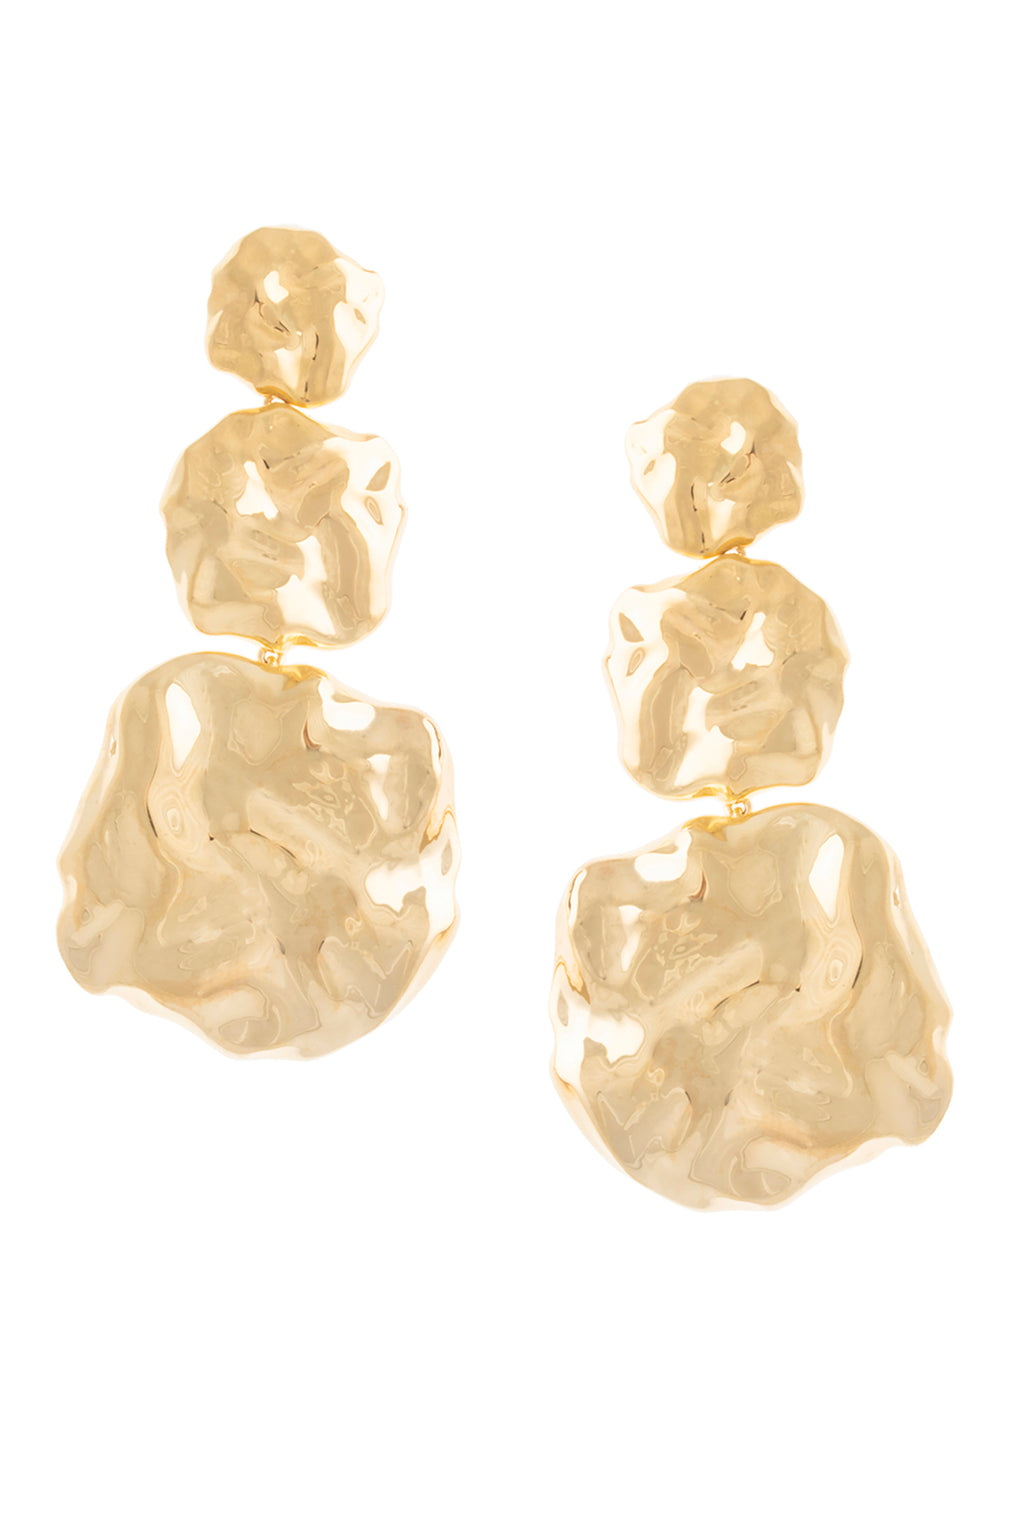 STATEMENT WAVES EARRINGS